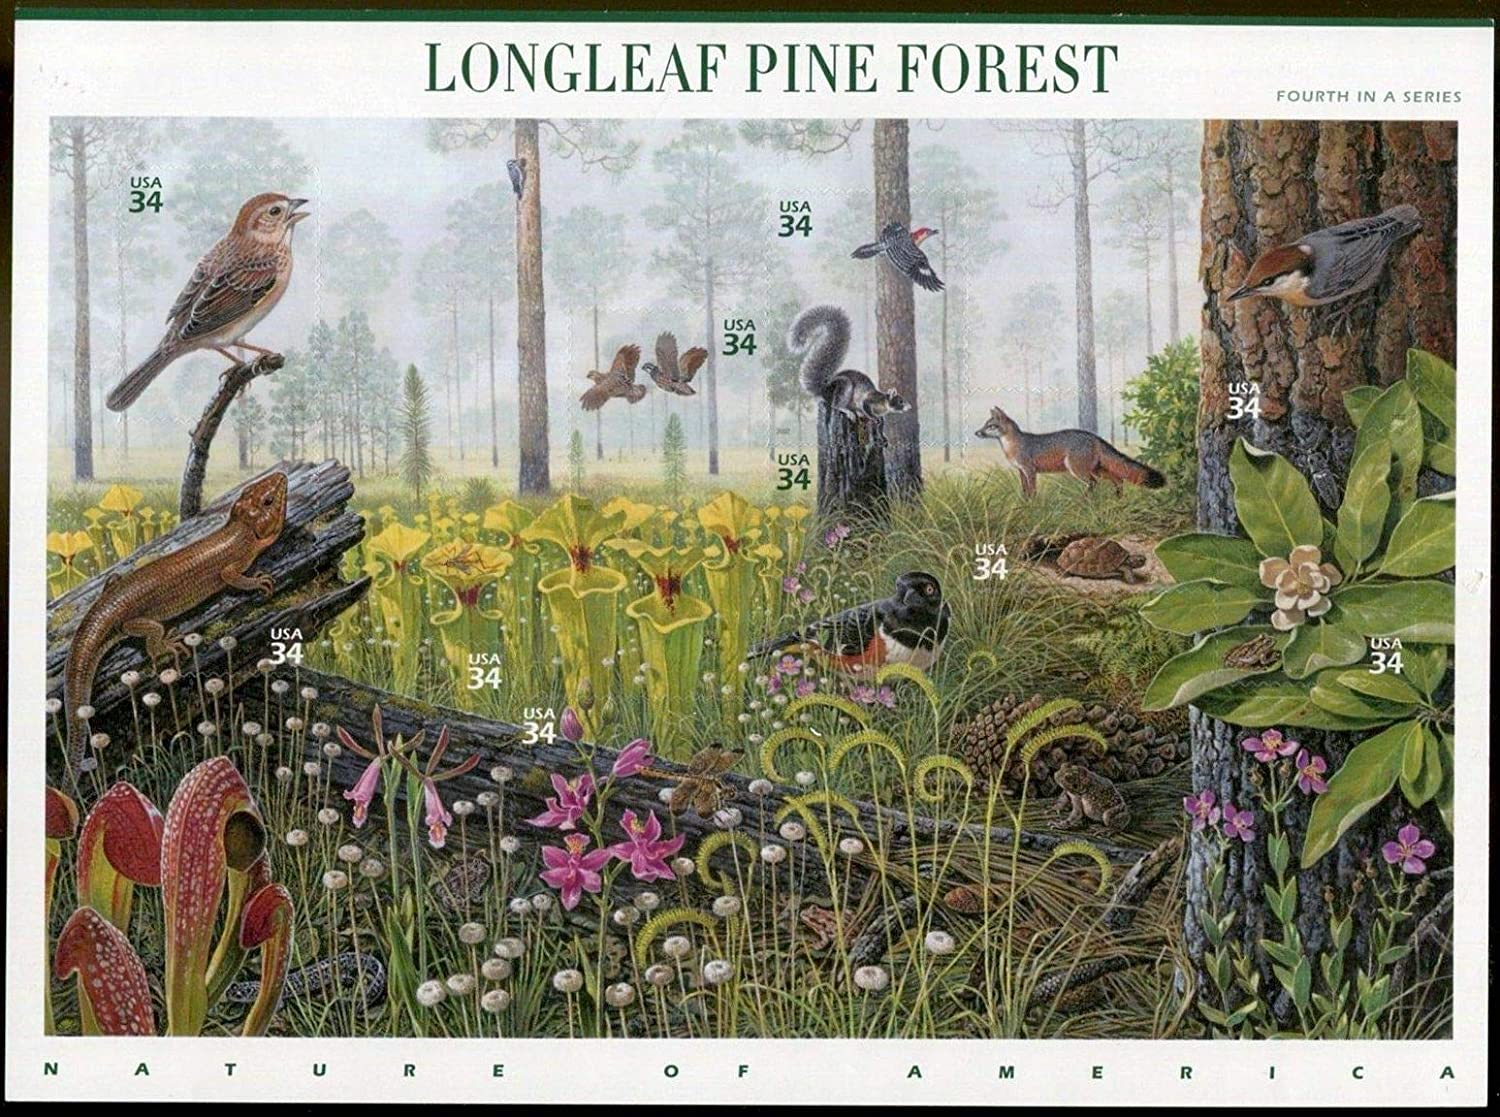 Longleaf Pine Forest (Nature of America) Full Sheet of Ten 34 Cent Postage Stamps Scott 3611